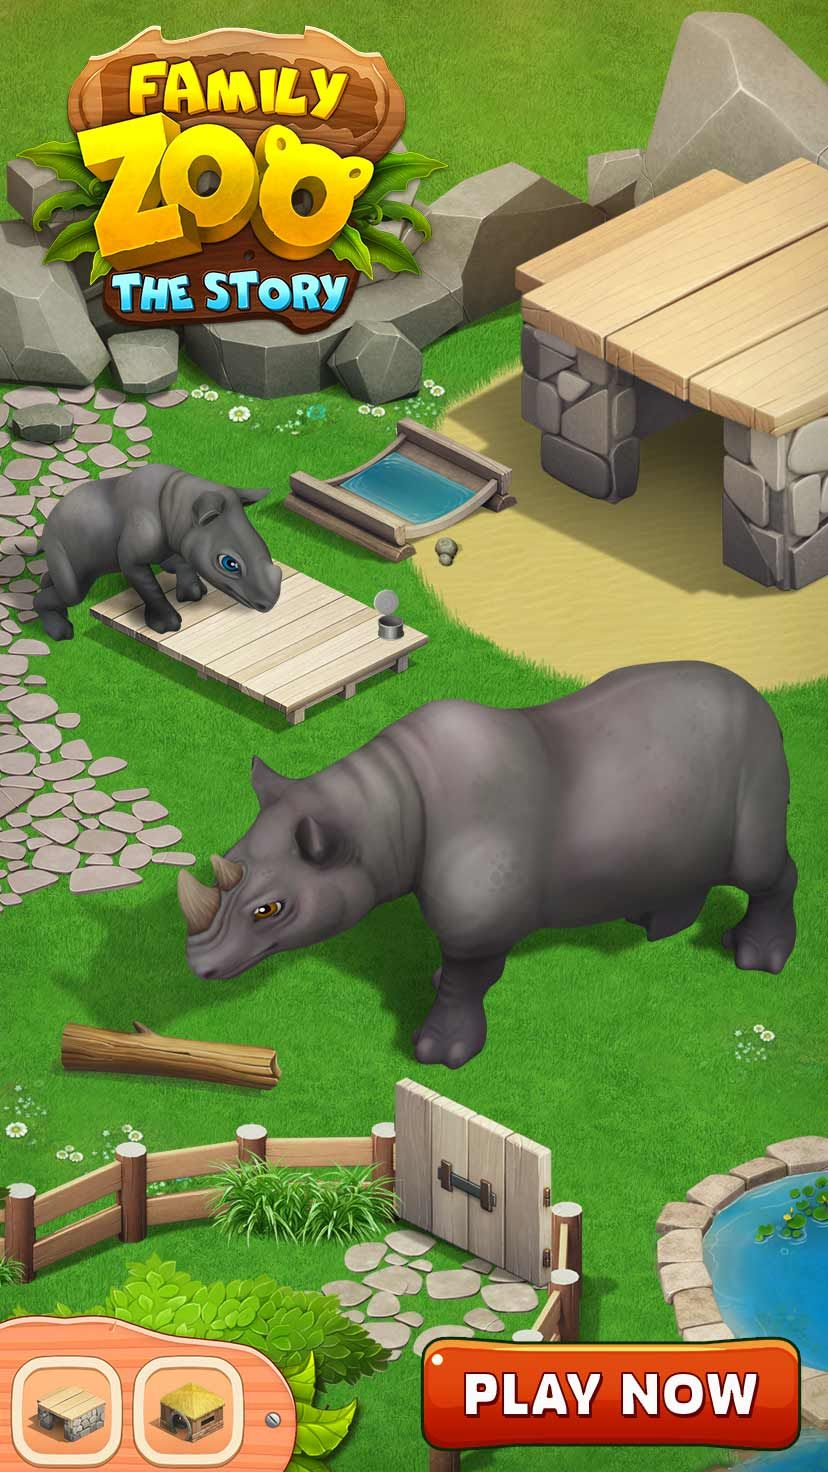 Family Zoo The Story Is A Match 3 Puzzle Game Switch And Way Animation